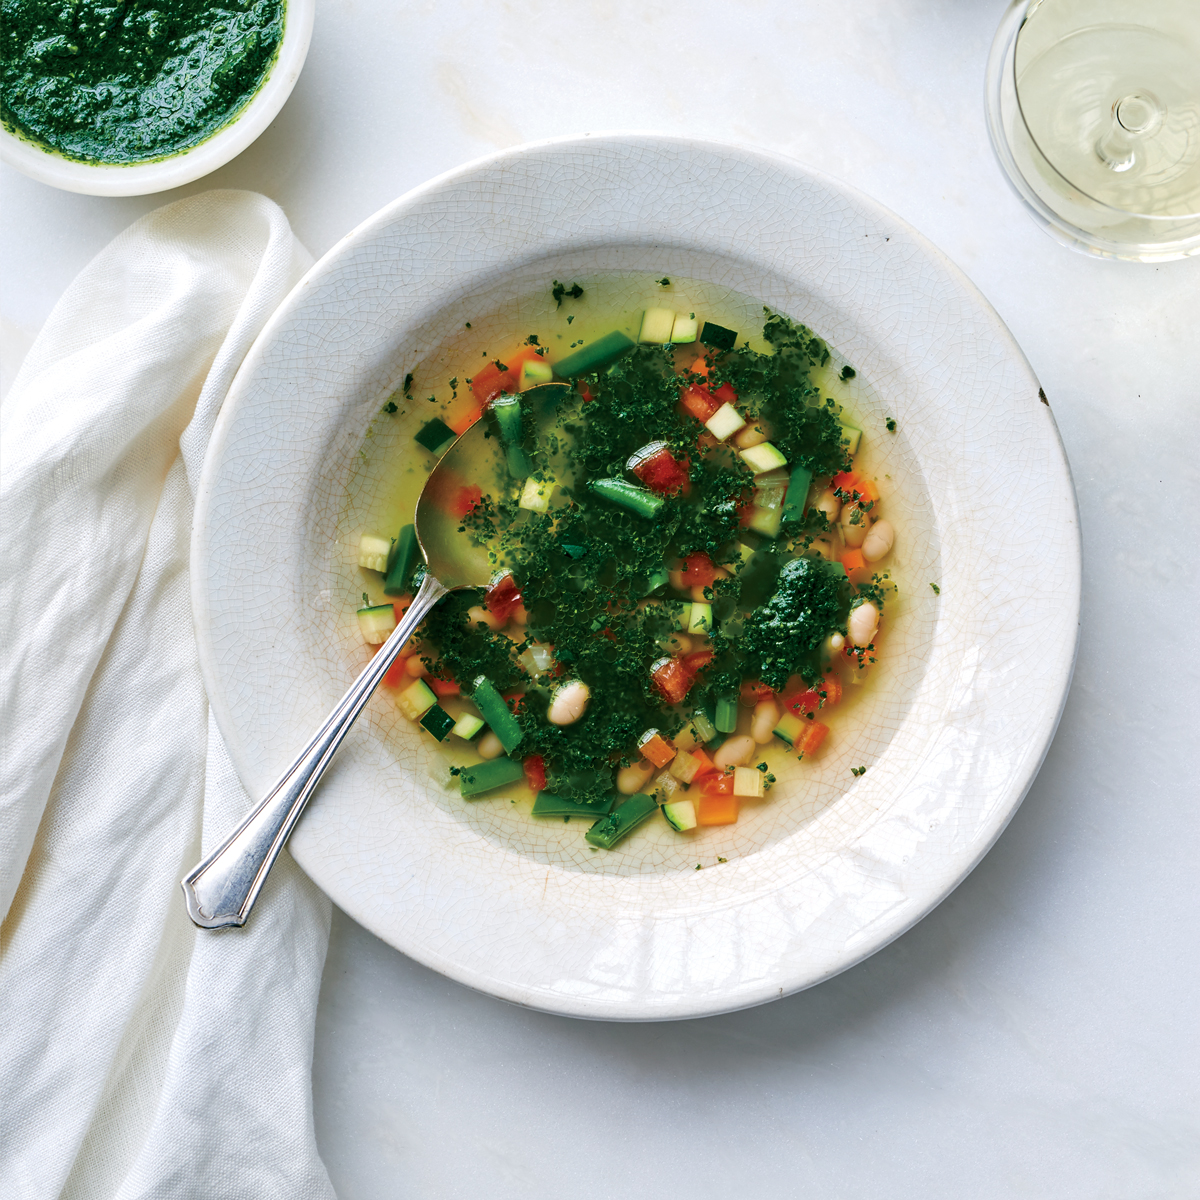 Soup from sea cocktail: cooking recipes